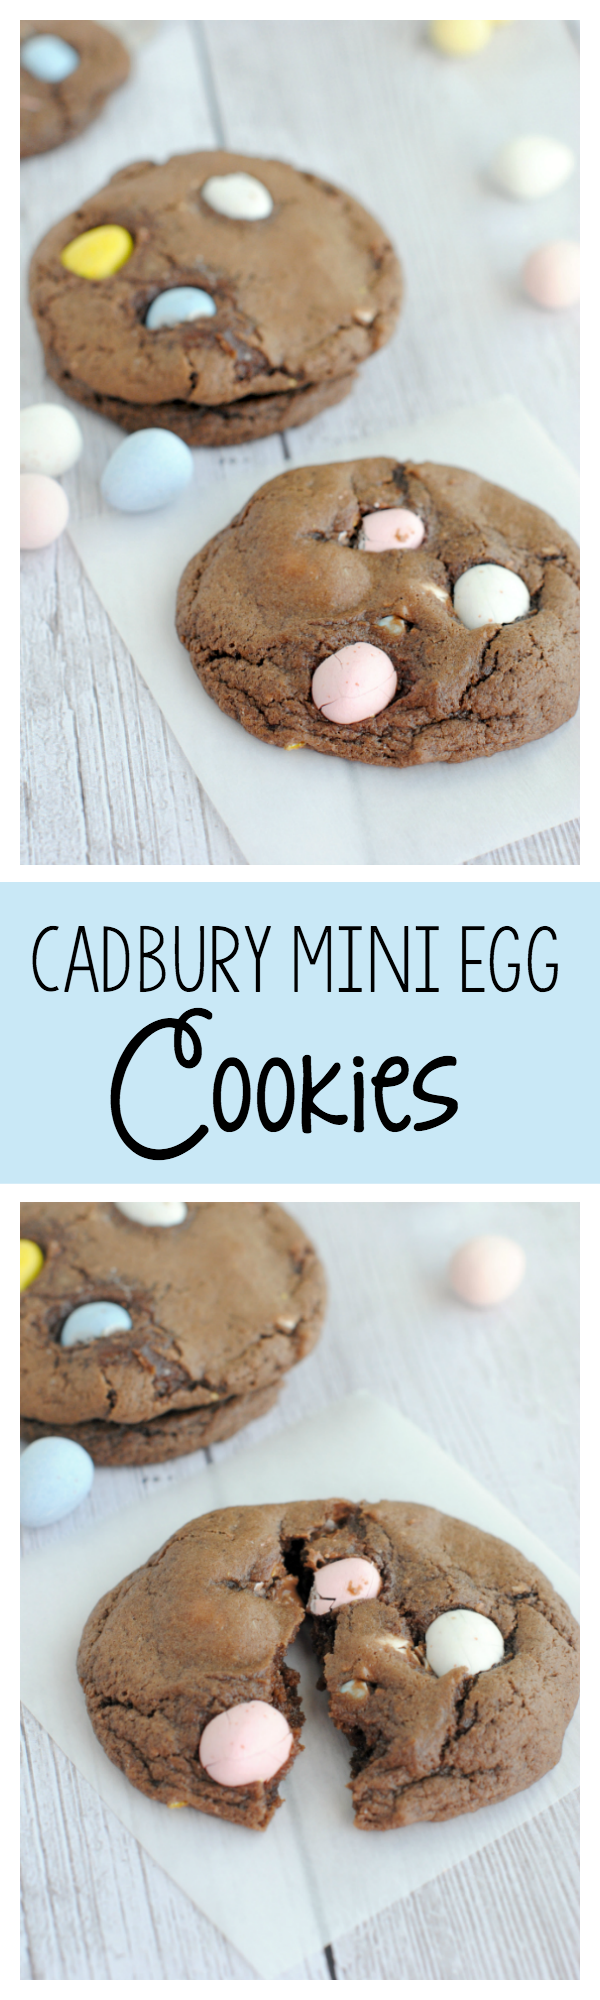 Easy and Amazing Cadbury Mini Egg Cookies Recipe. The BEST Easter dessert, these soft chocolate cookies with Cadbury mini eggs are going to have you drooling! #cookies #desserts #dessertrecipe #easter